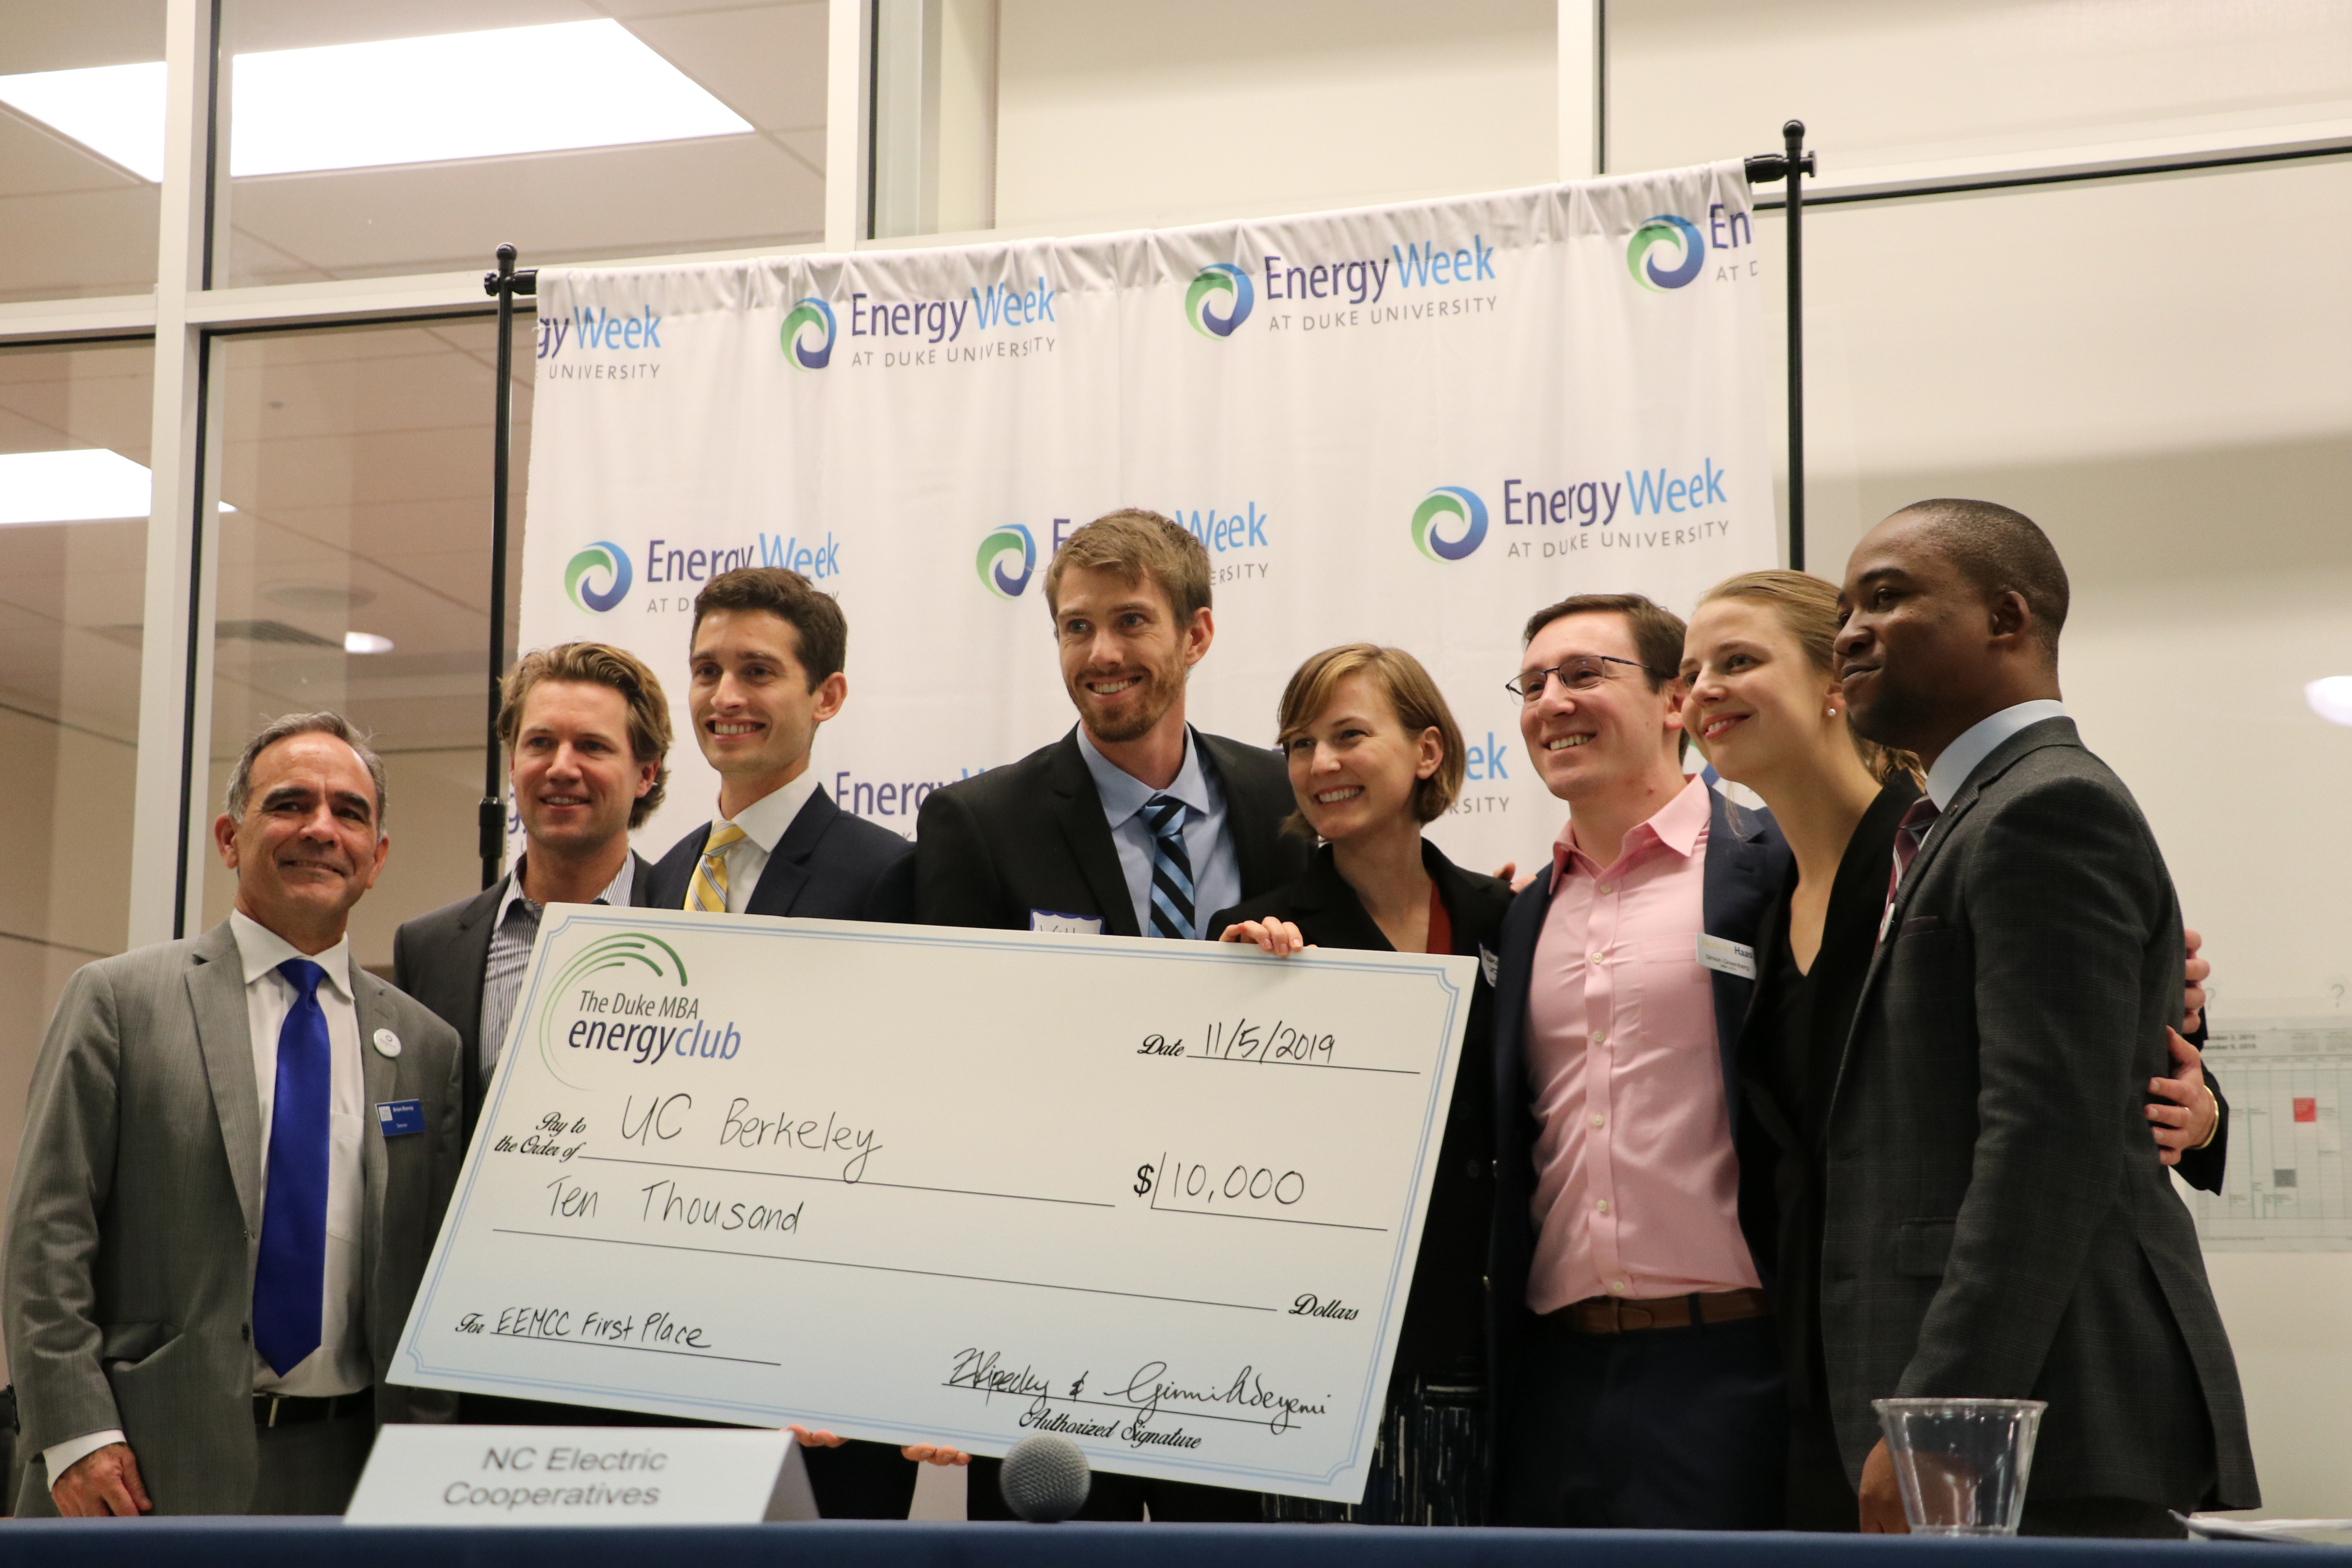 Students Gain Experience with Energy Challenges in Emerging Markets Through Competition